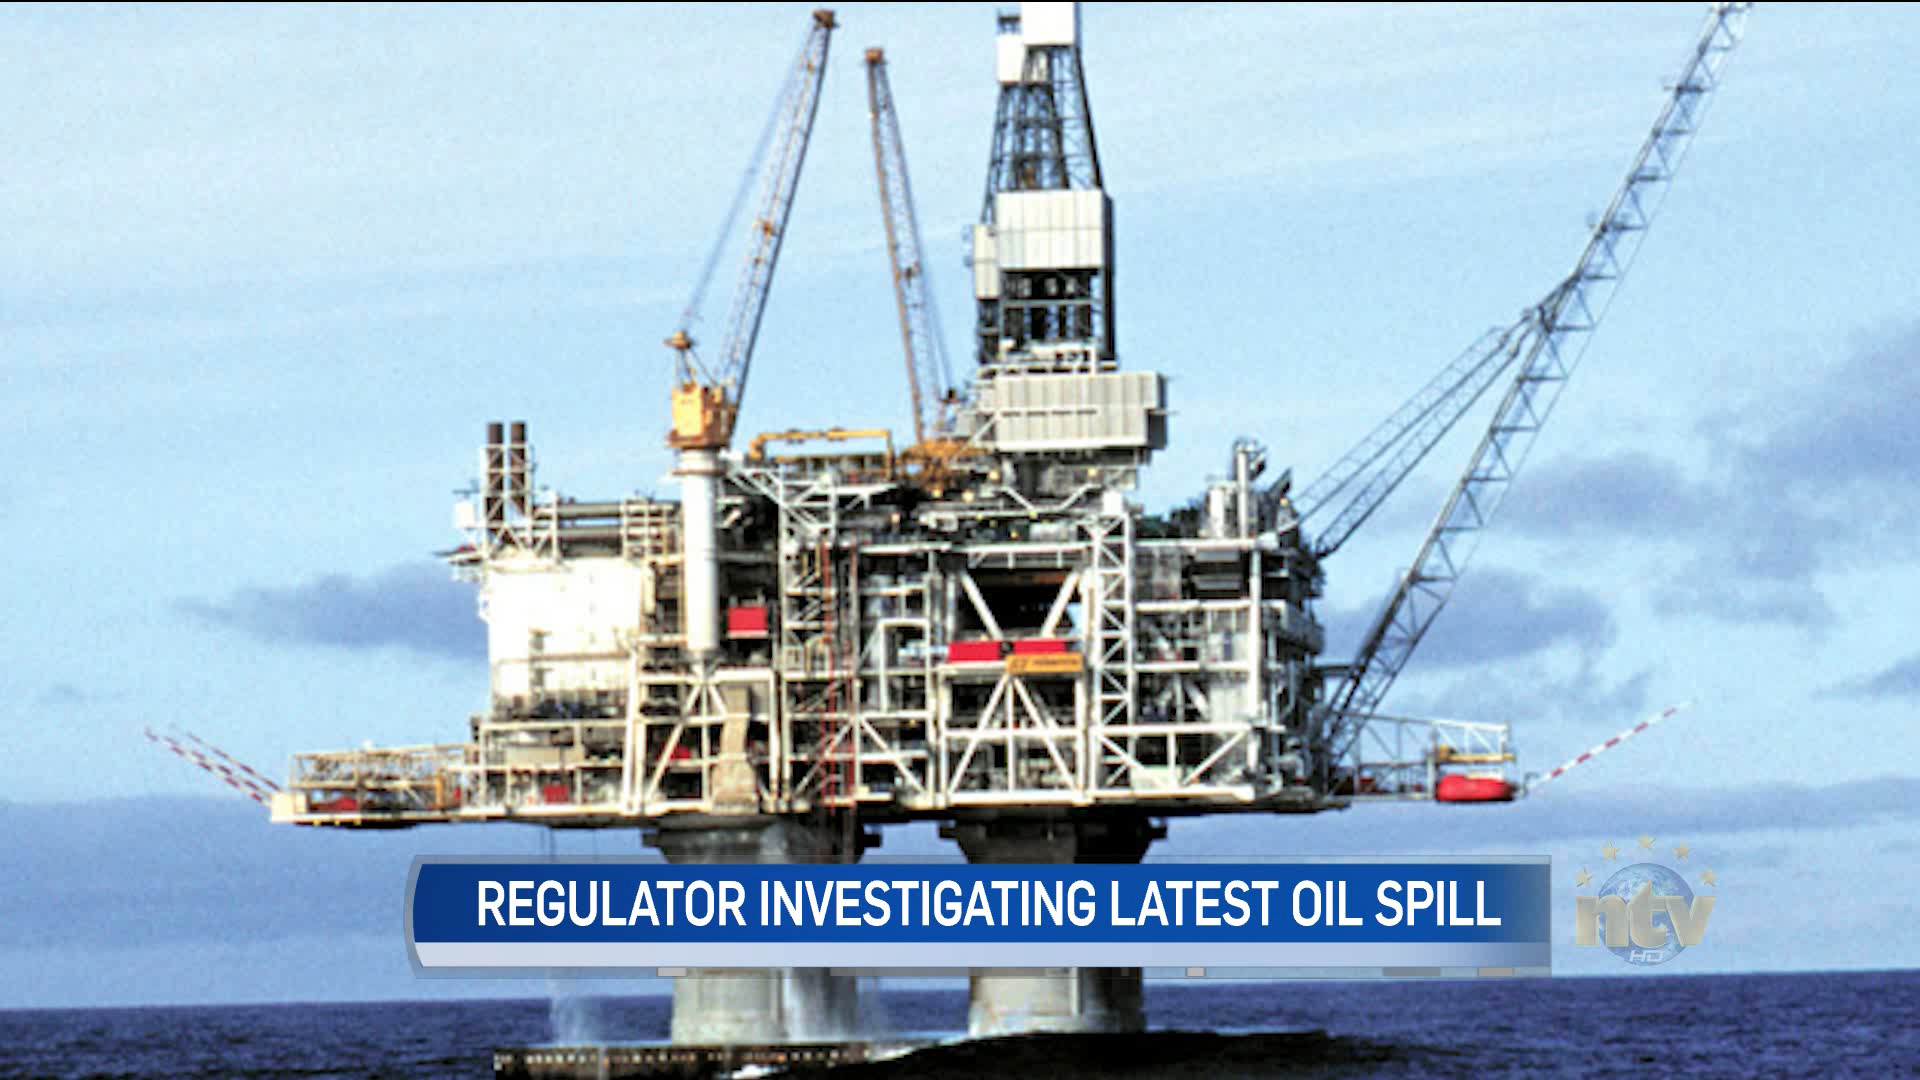 Oil industry and regulator under fire again after latest offshore spill - ntv.ca